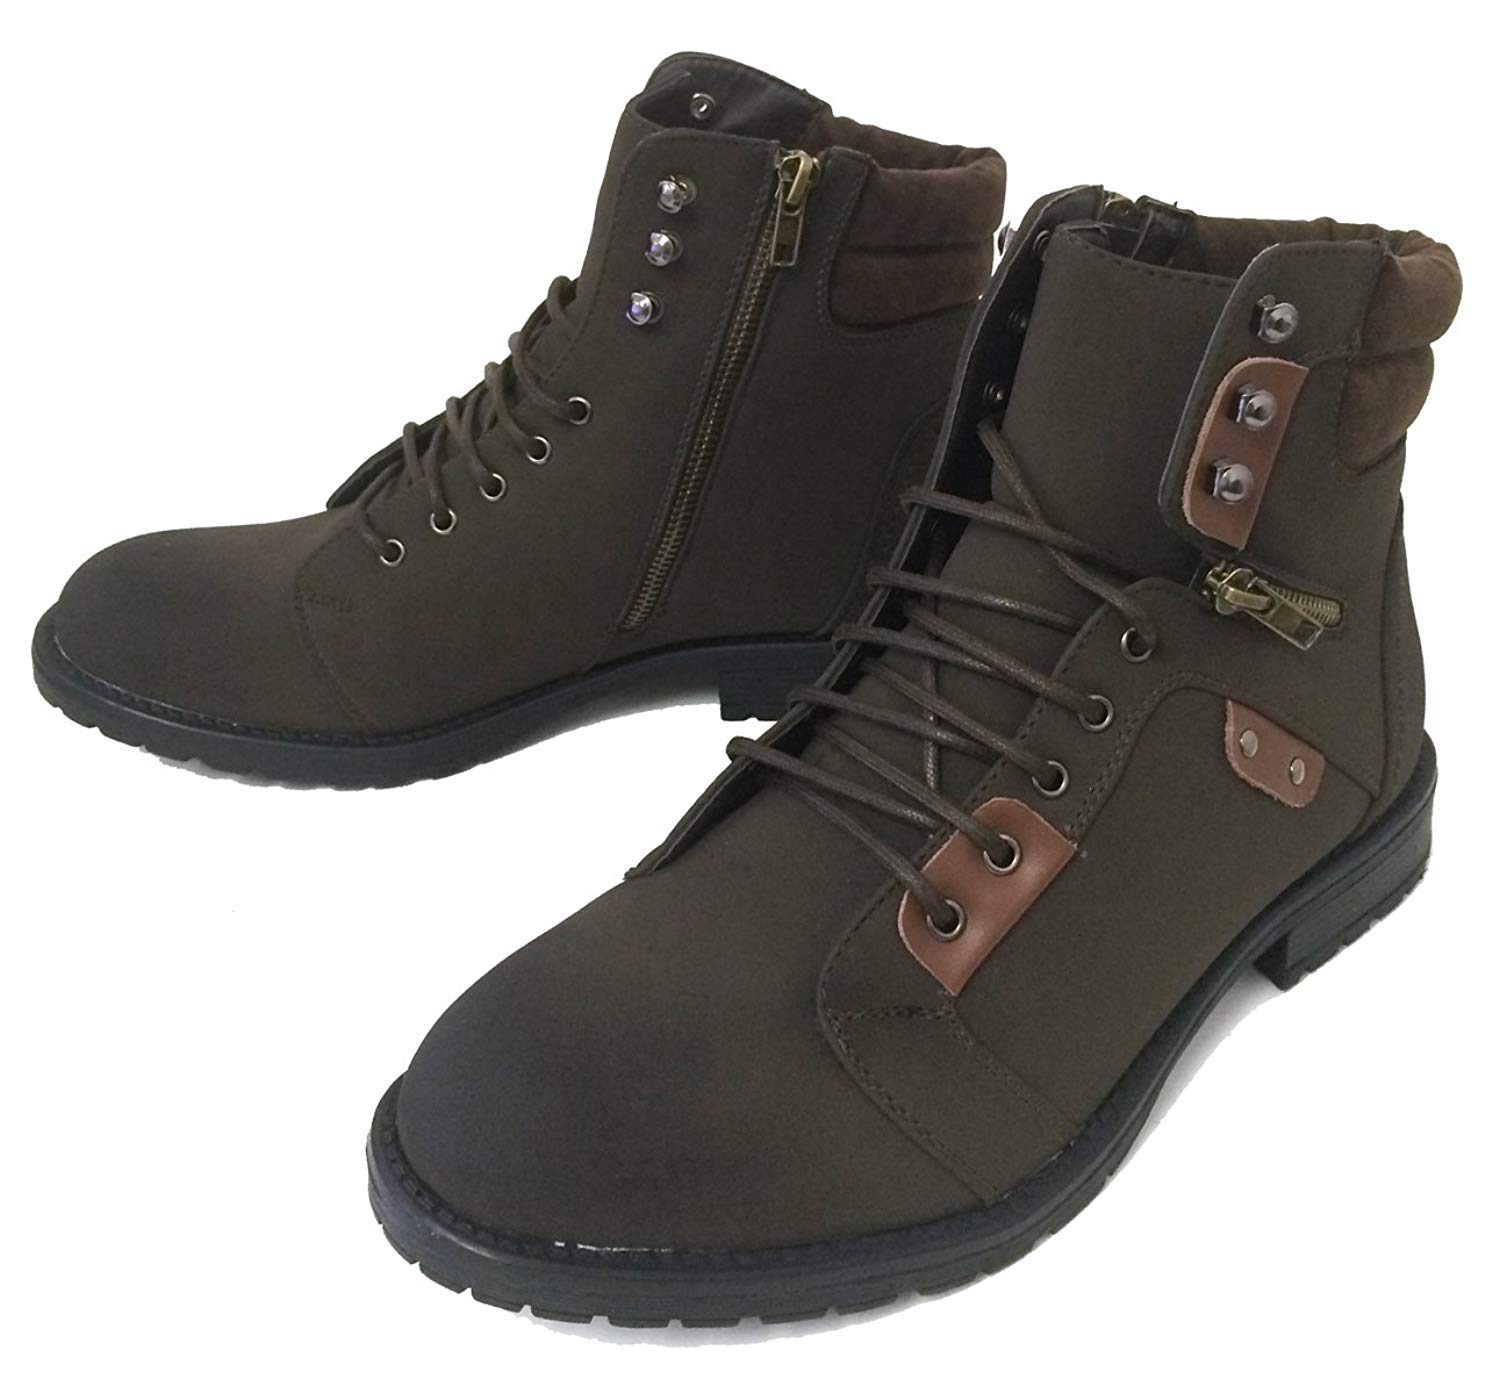 b82a61795e07a Cheap Brown Lace Up Military Boots, find Brown Lace Up Military ...